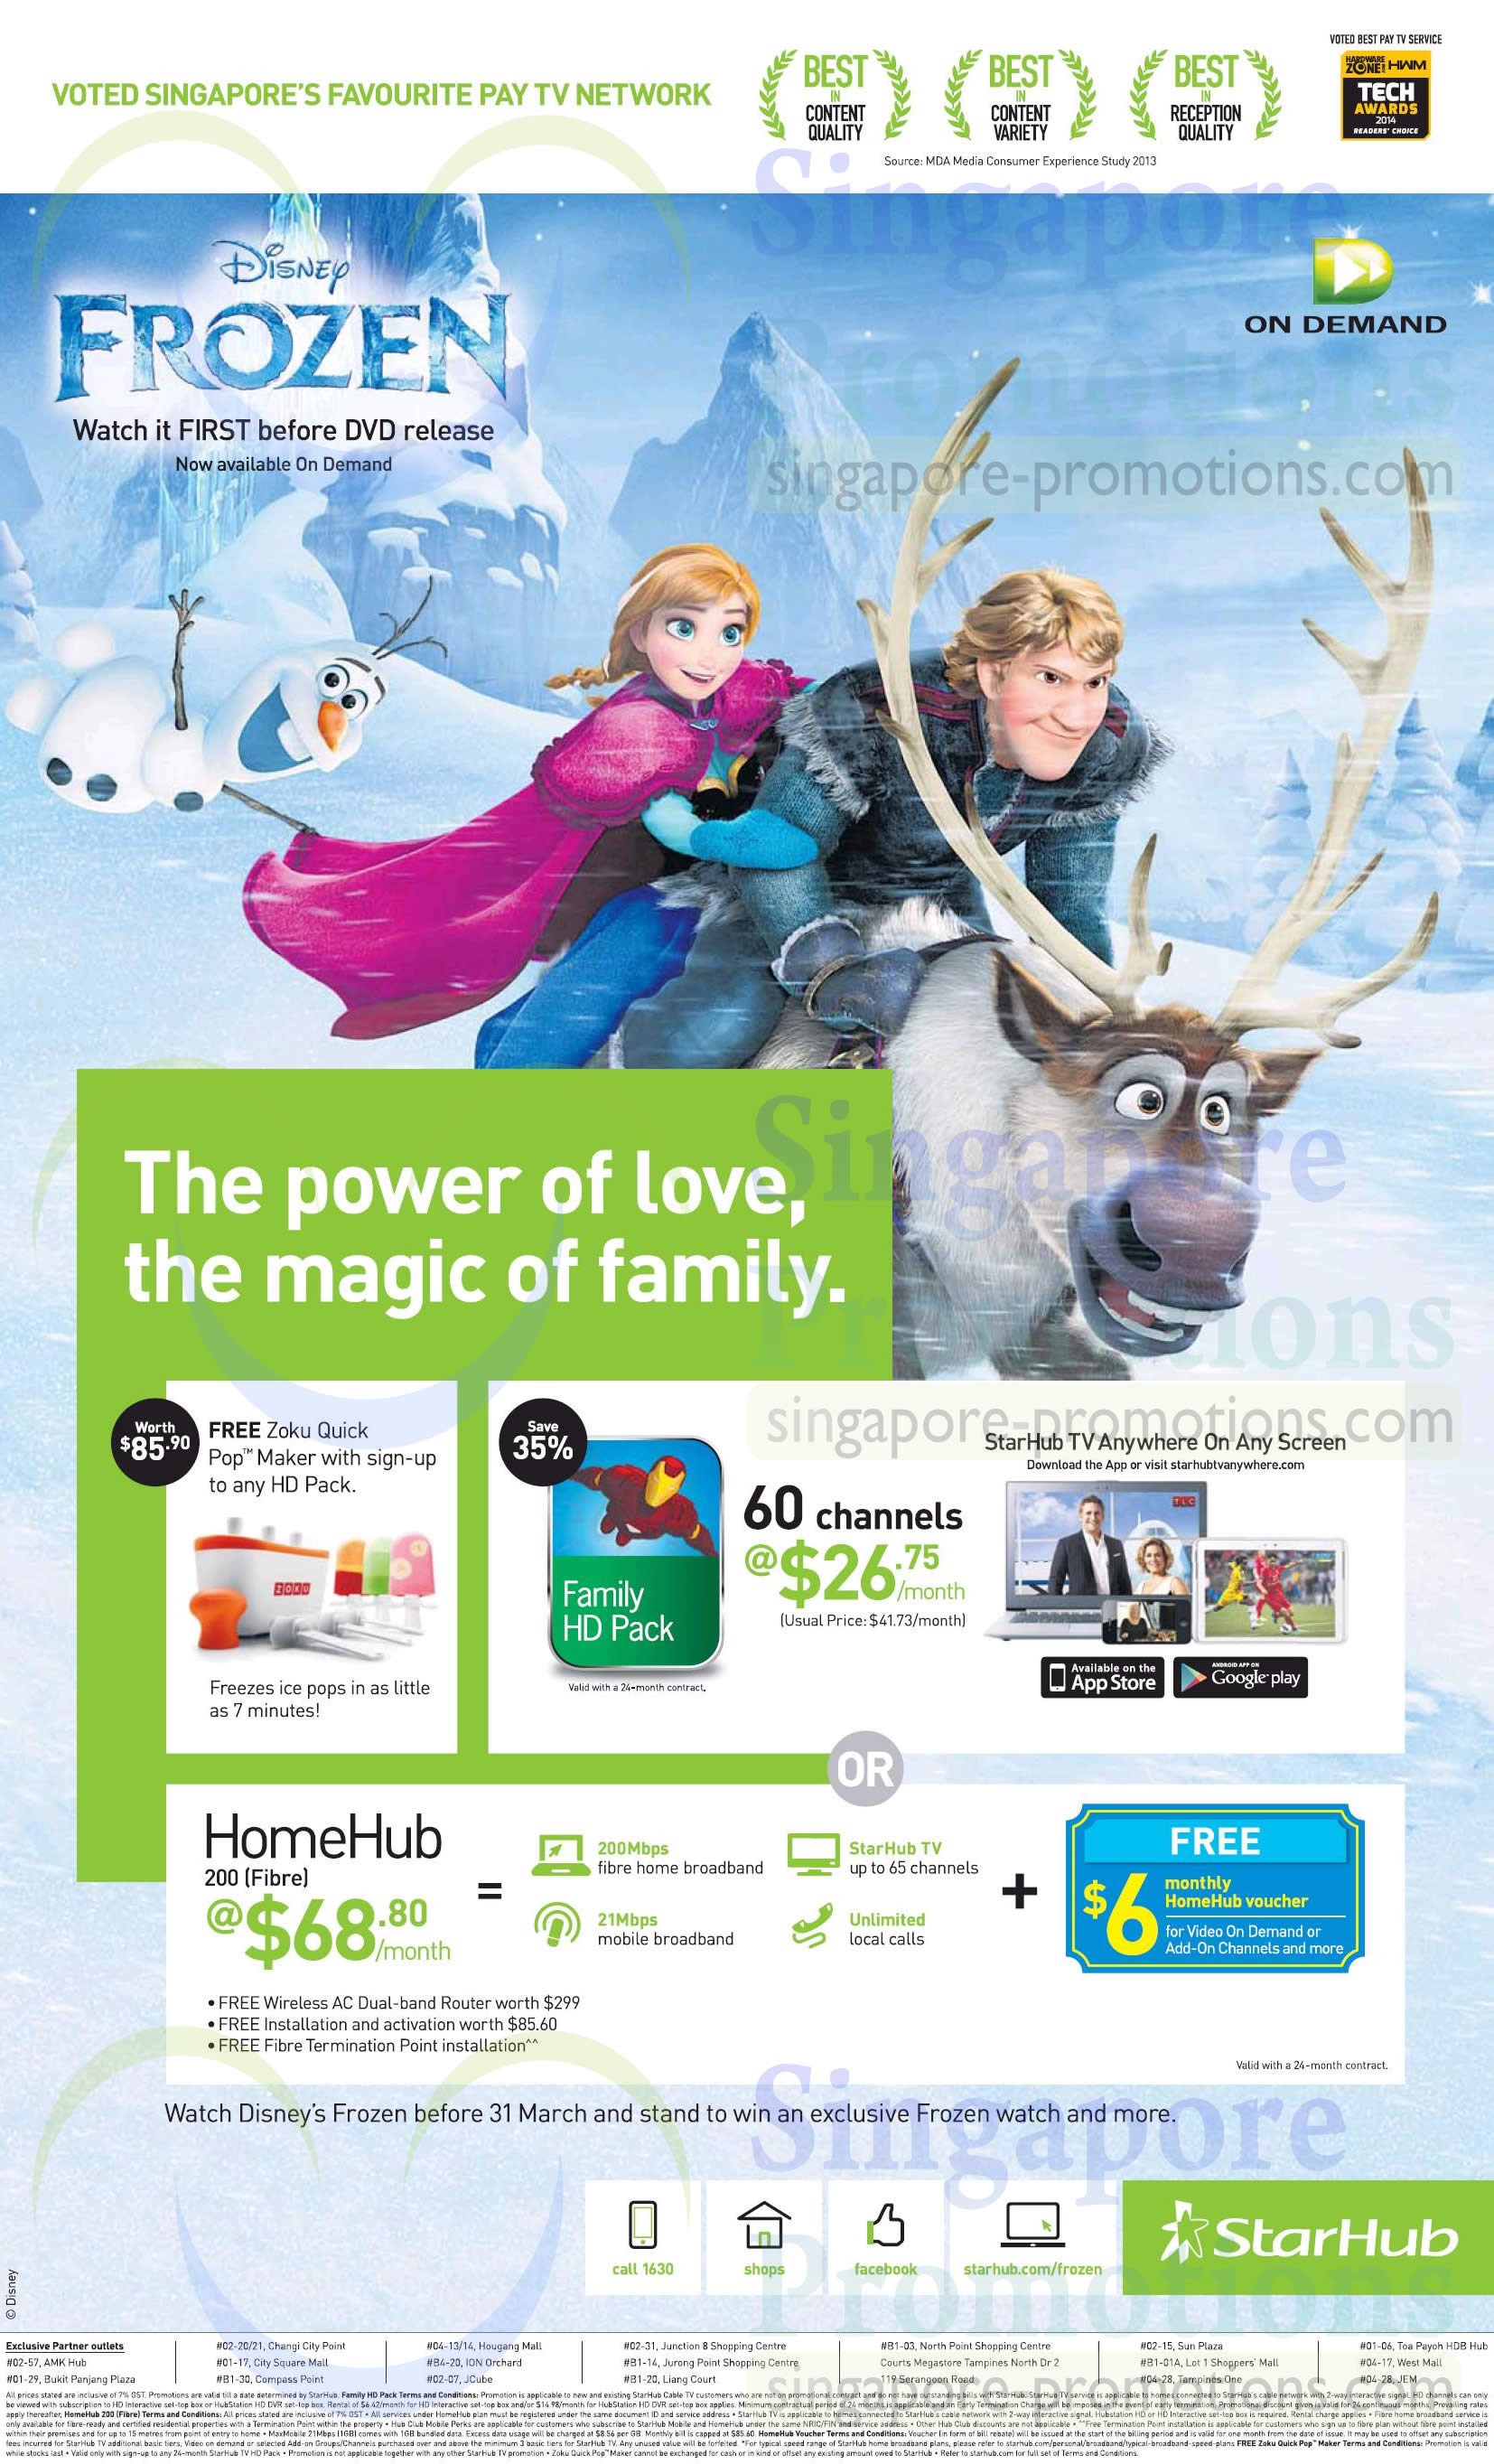 Cable TV Family HD Pack, HomeHub 200Mbps 68.80 Fibre Broadband